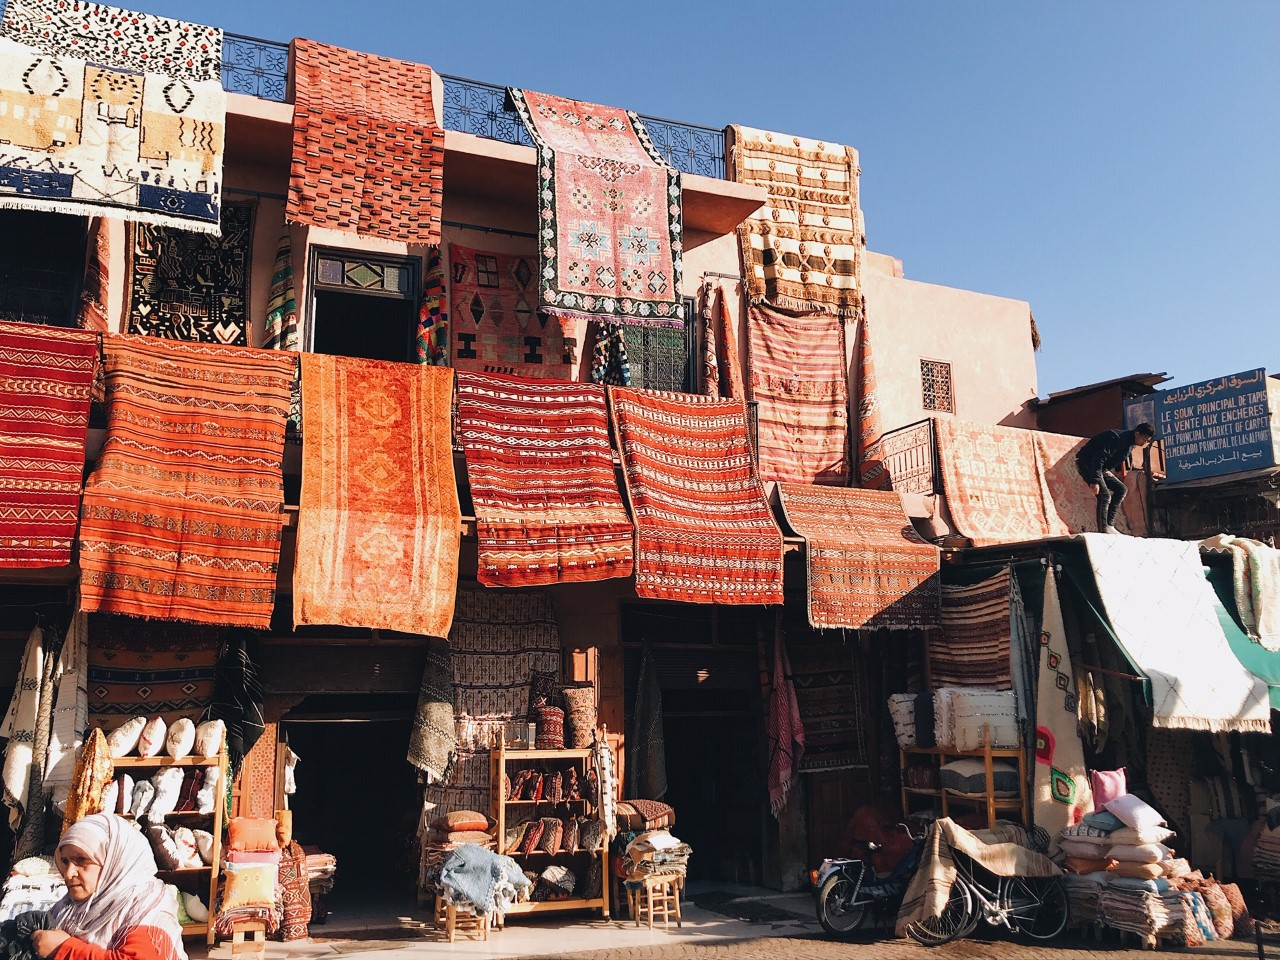 The Souks, Marrakech - discover the best places to see in Marrakech from this article